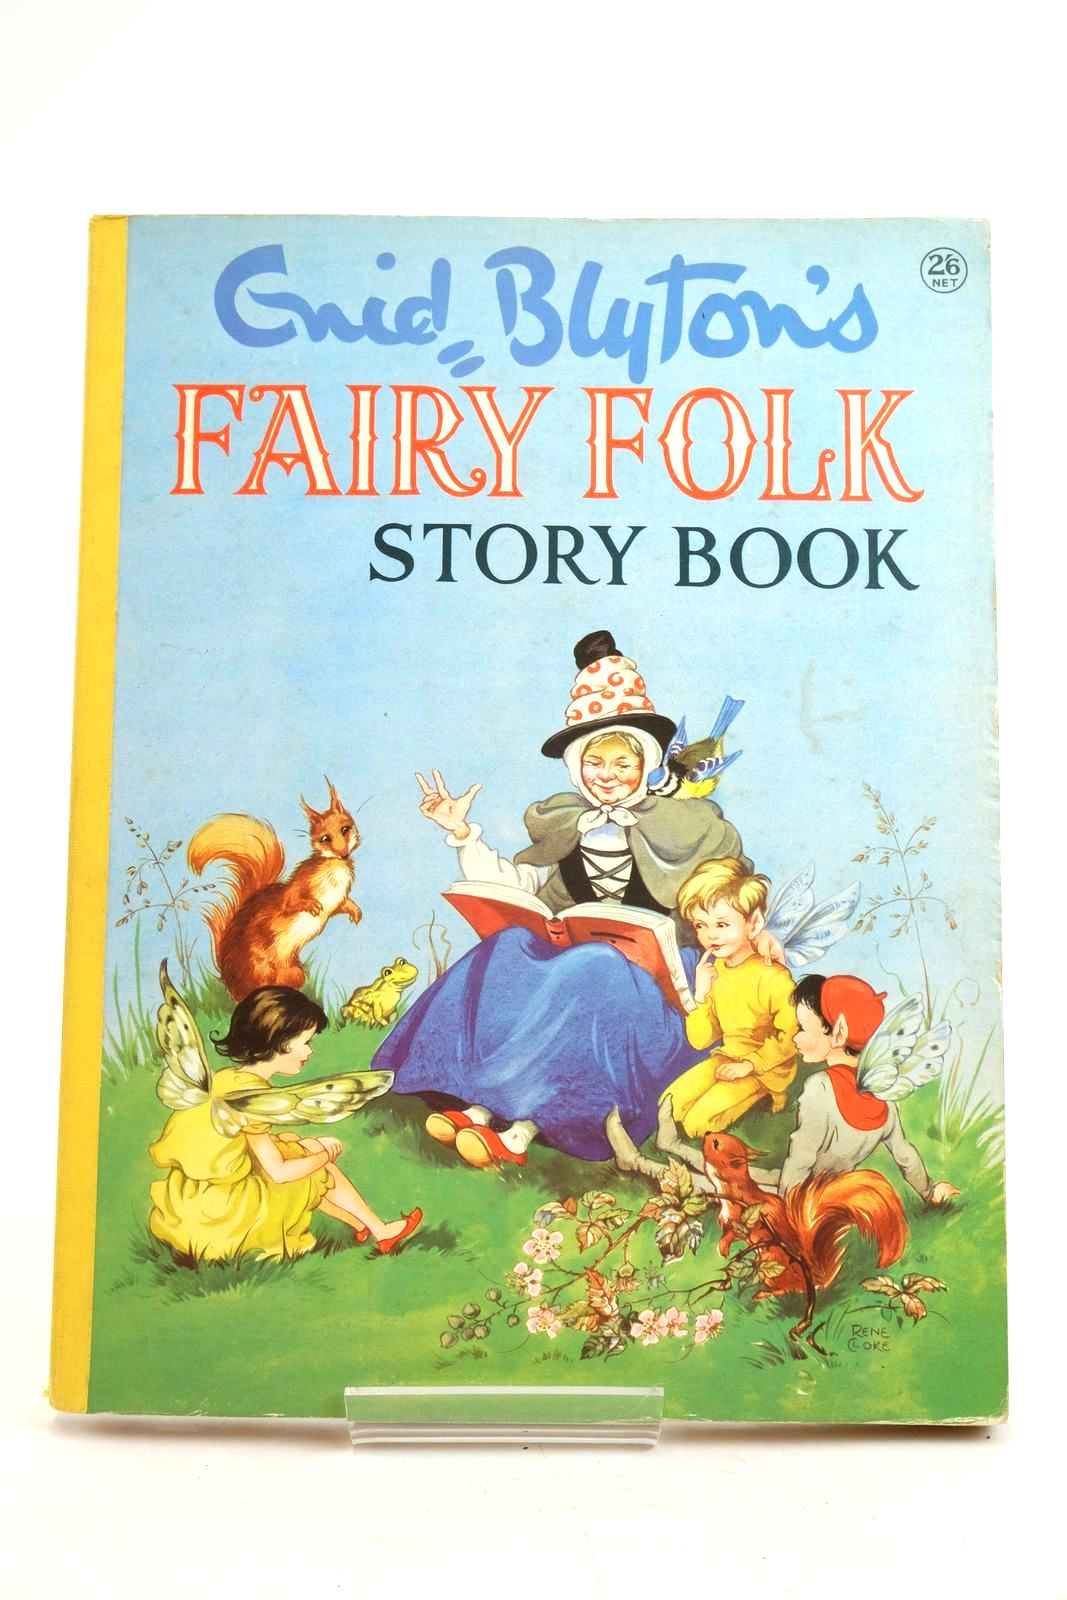 Photo of ENID BLYTON'S FAIRY FOLK STORY BOOK written by Blyton, Enid published by Collins (STOCK CODE: 1320051)  for sale by Stella & Rose's Books